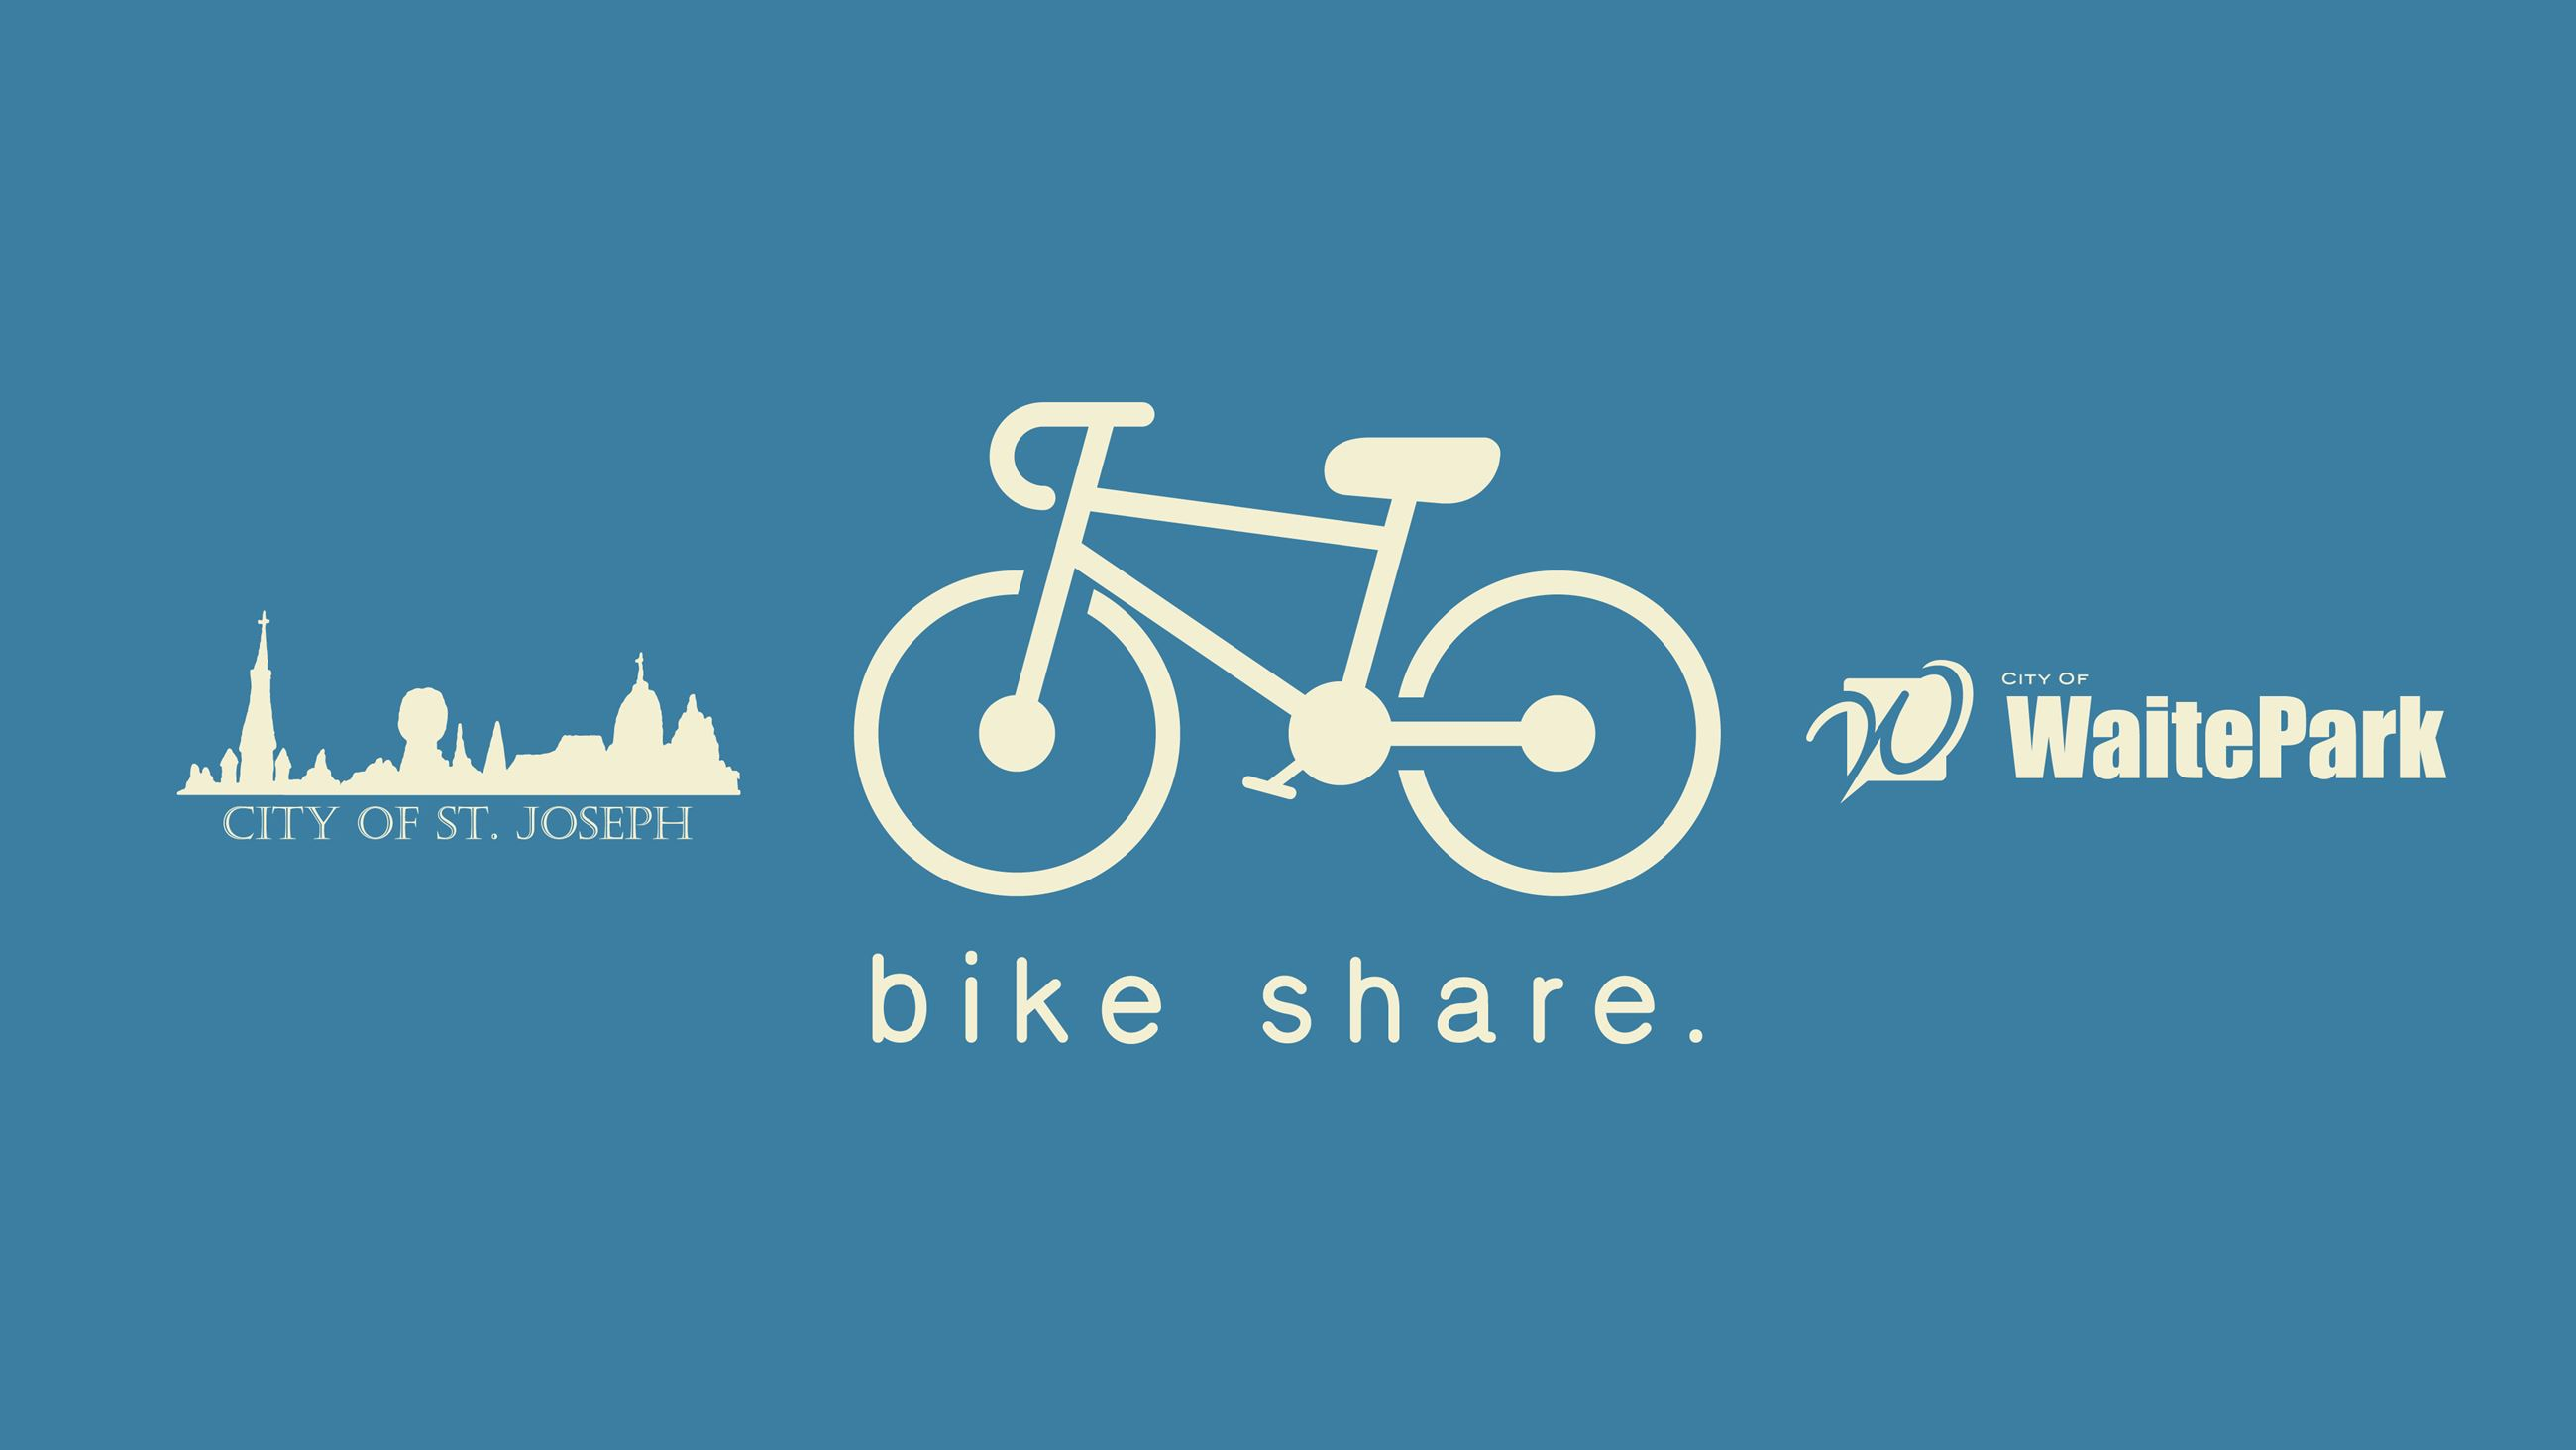 St Joseph-Waite Park-Bike Share Program